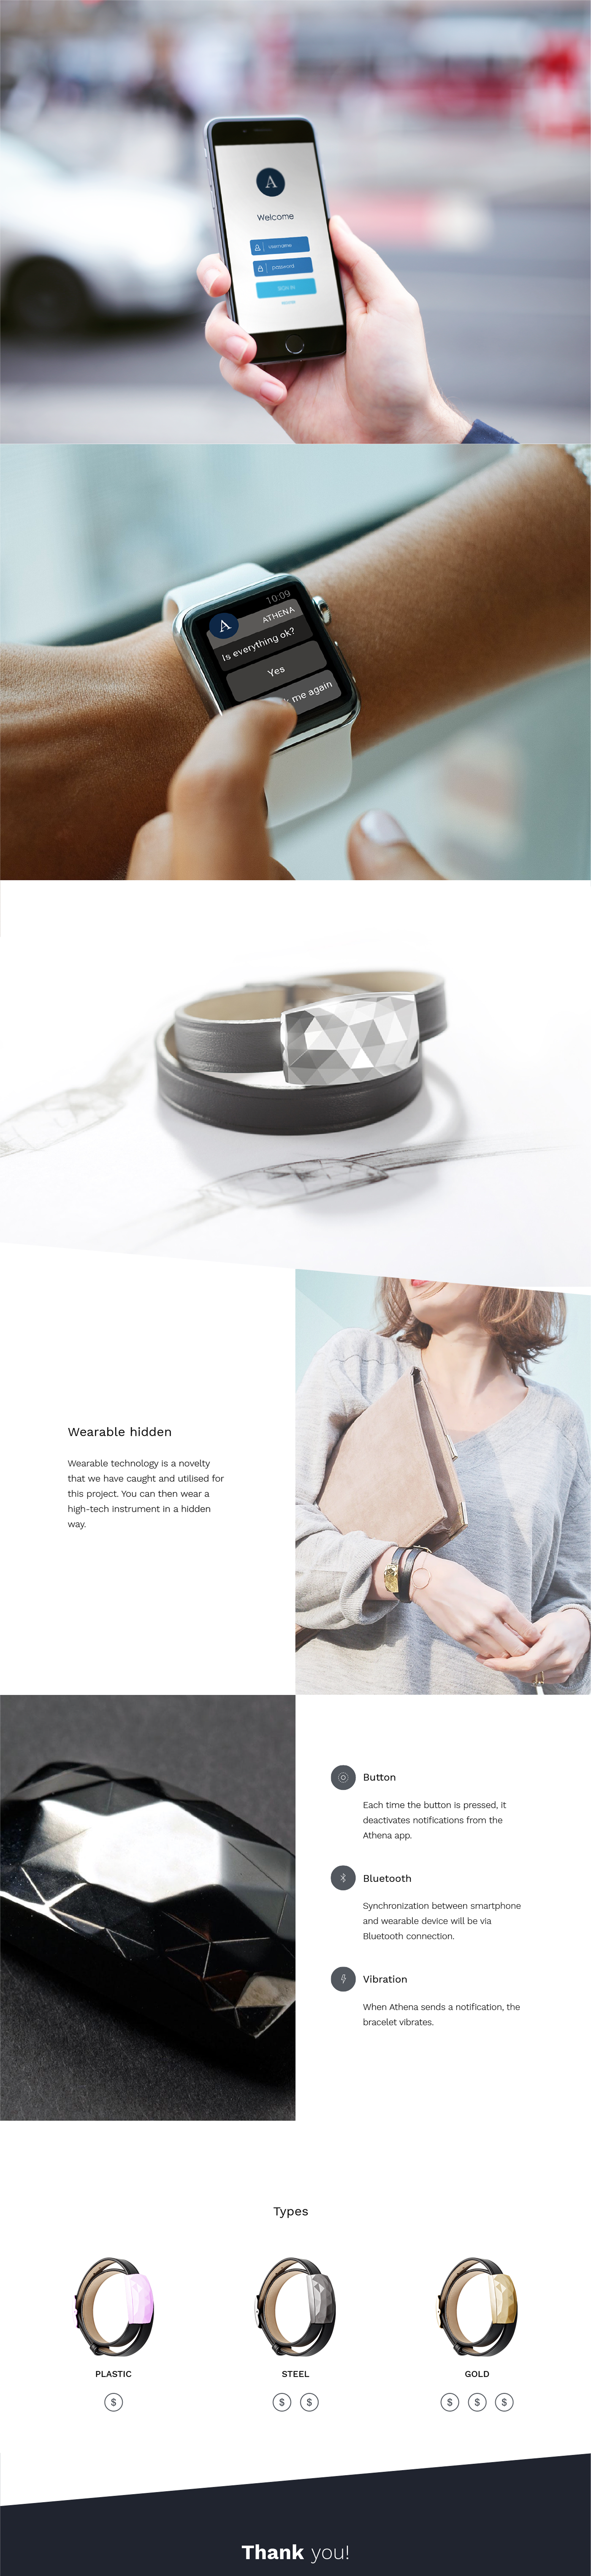 security app UI graphic design  woman iphone apple watch werable bluetooth product design